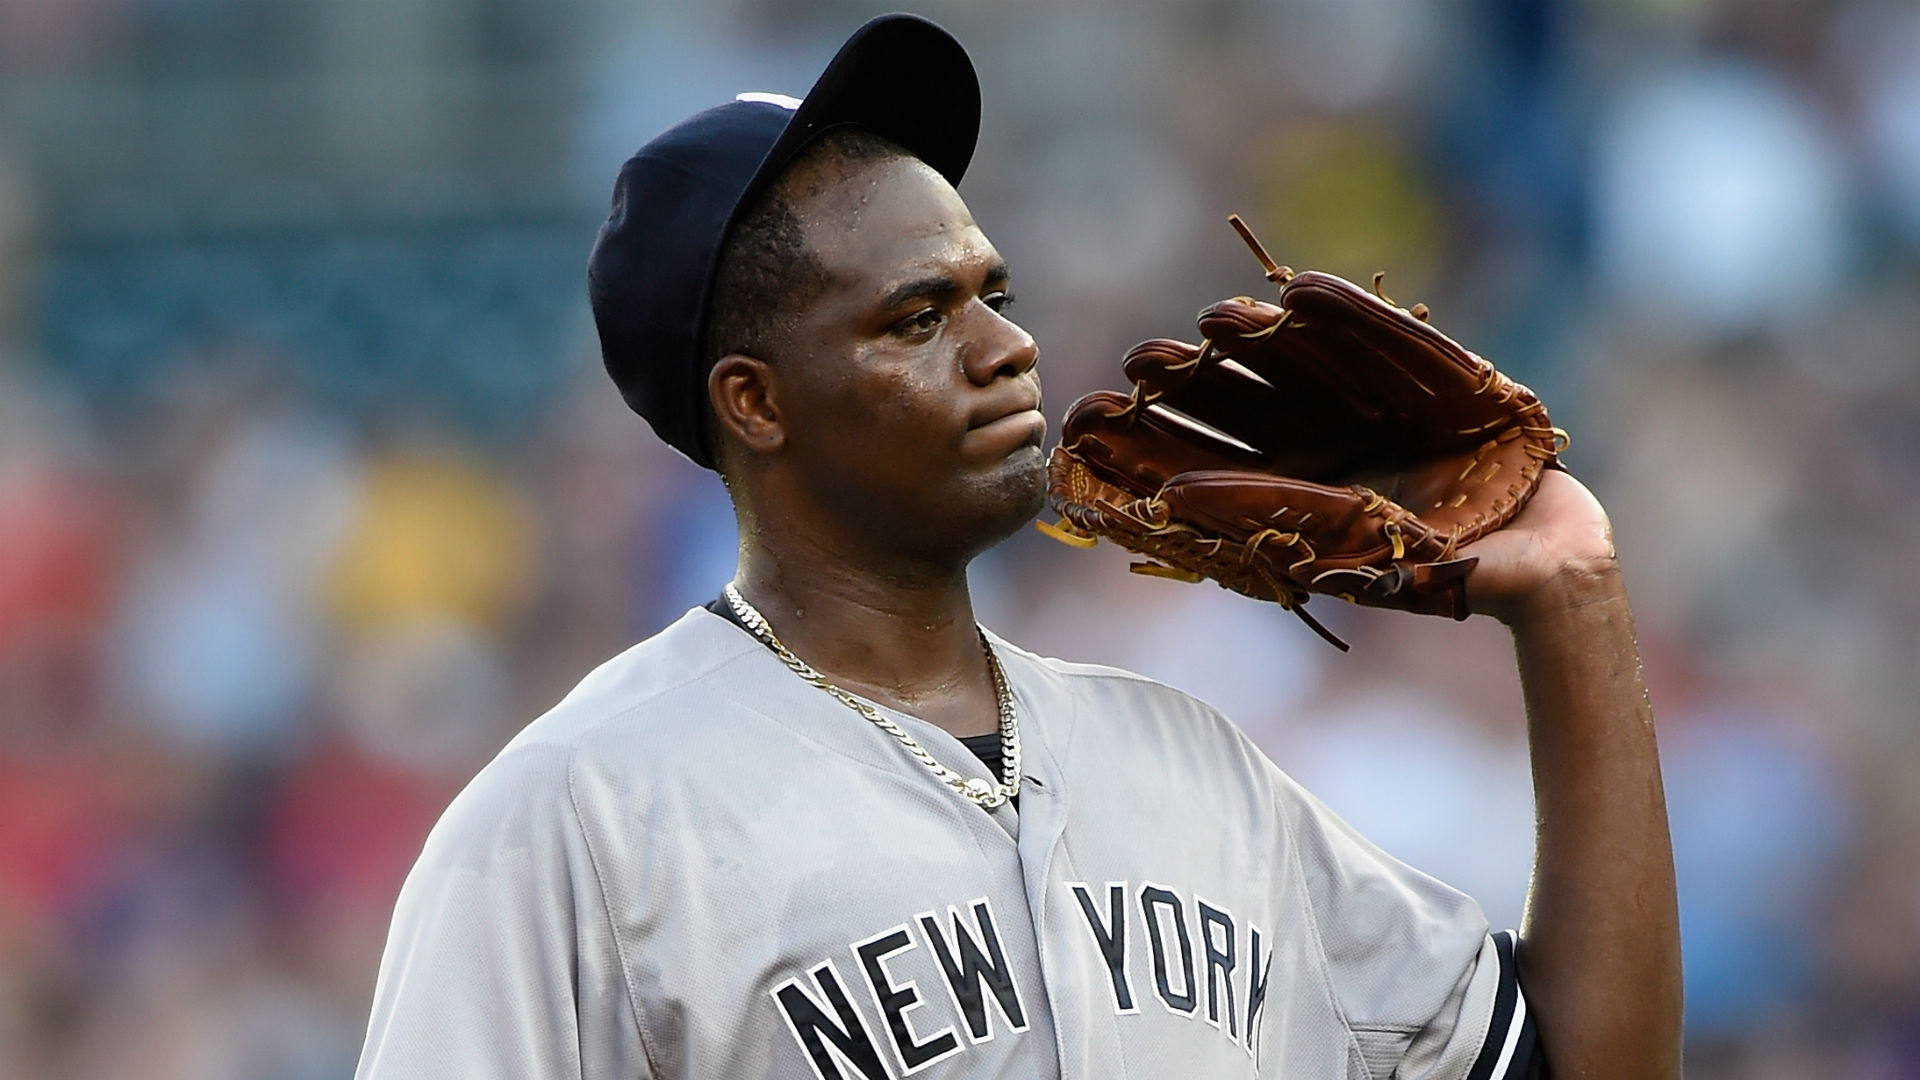 Michael Pineda scratched from Thursday start with forearm injury